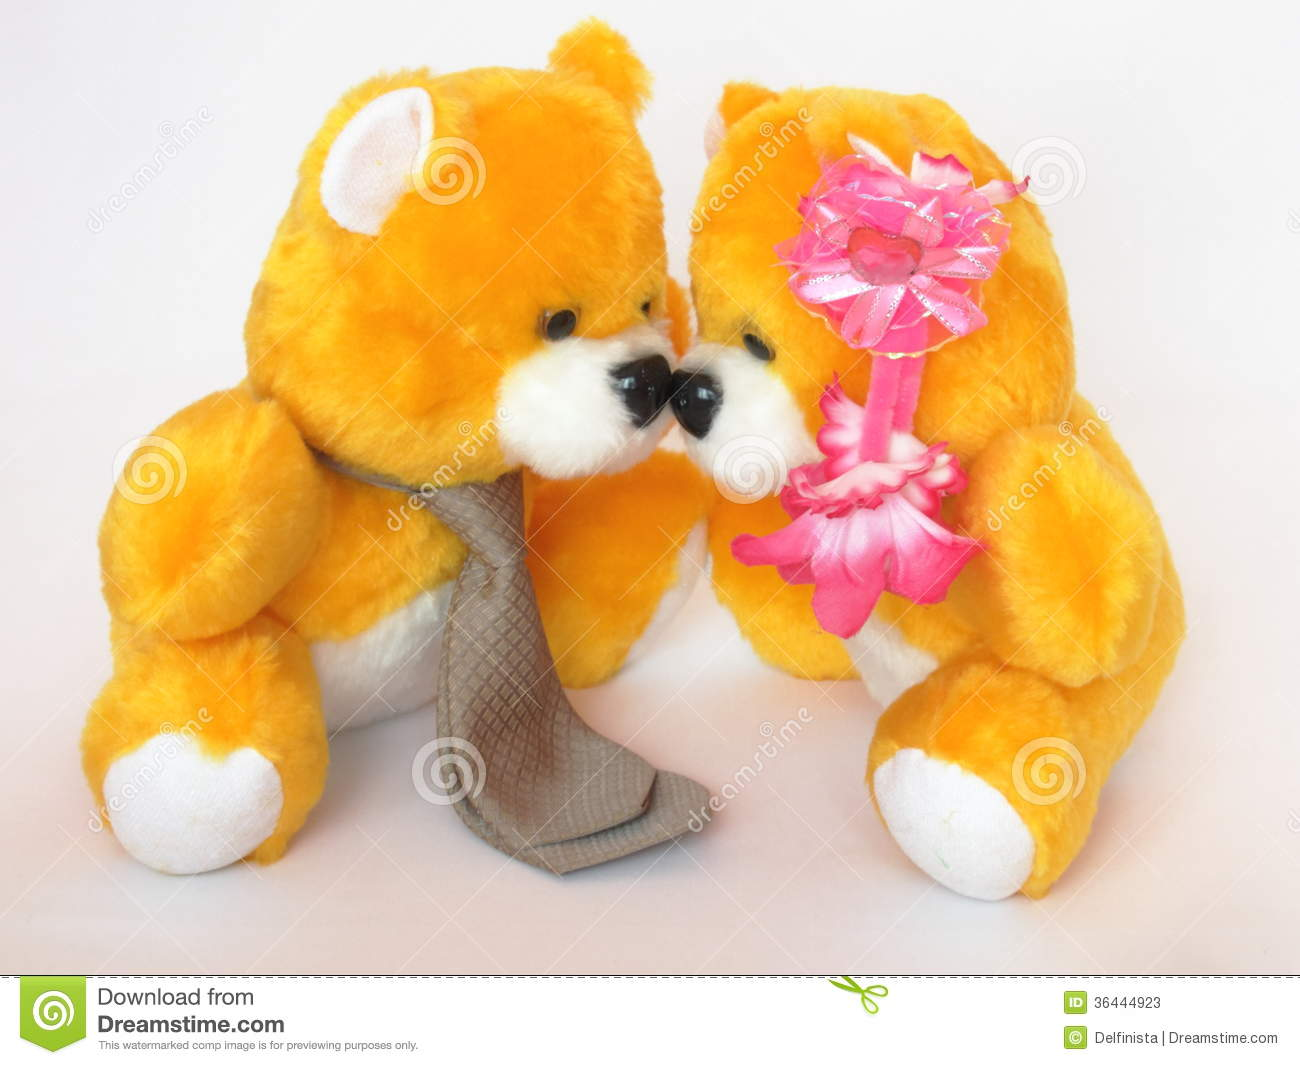 Teddy Bears Valentines Day Card Photos Photos – Teddy Bear Valentines Day Card